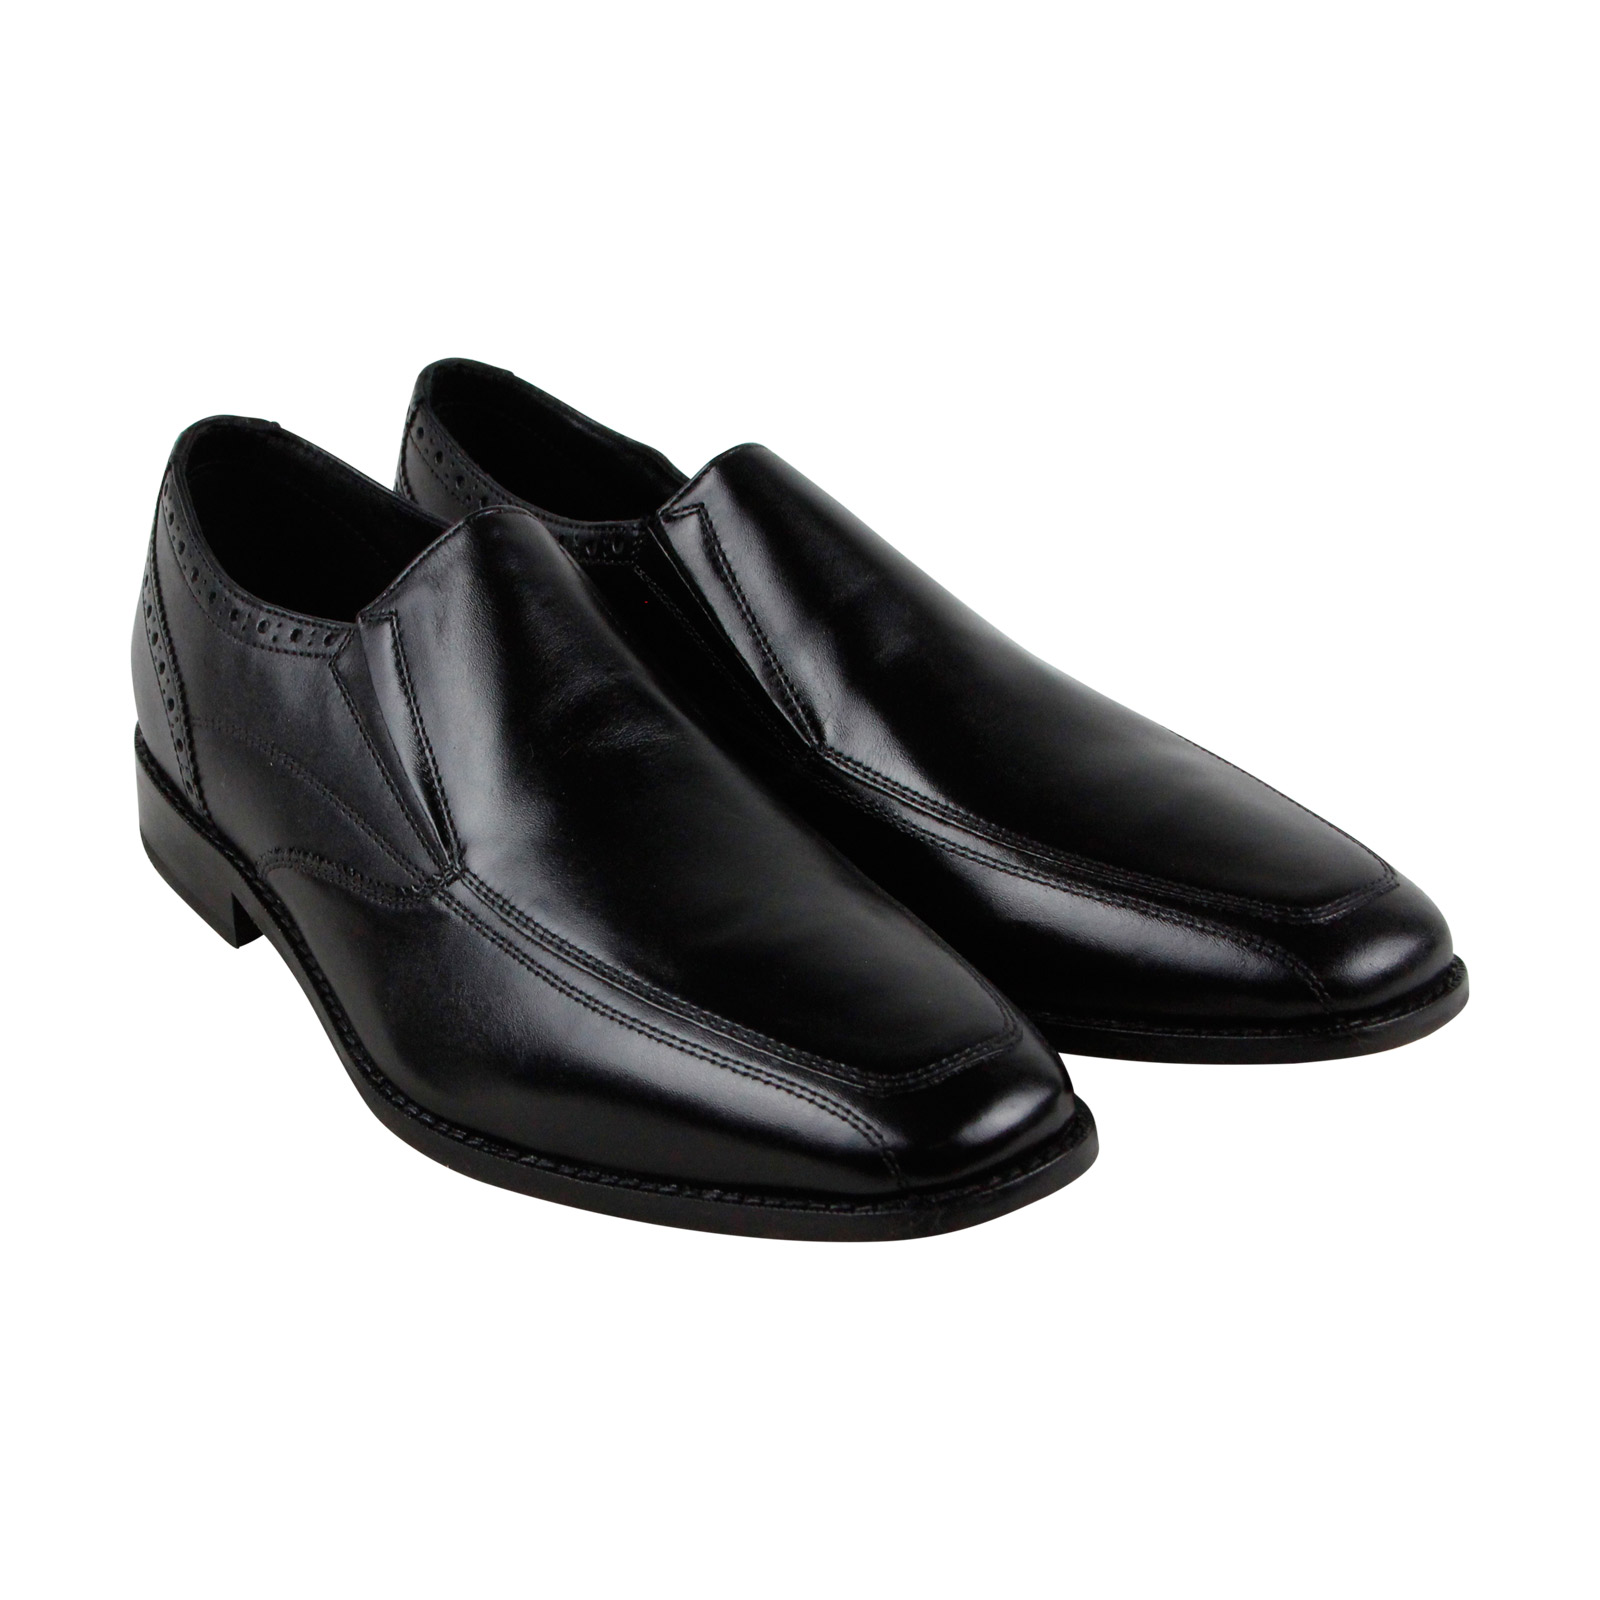 Florsheim Castellano Mcsl Mens Black Leather Casual Dress Slip On Loafers Shoes by Florsheim